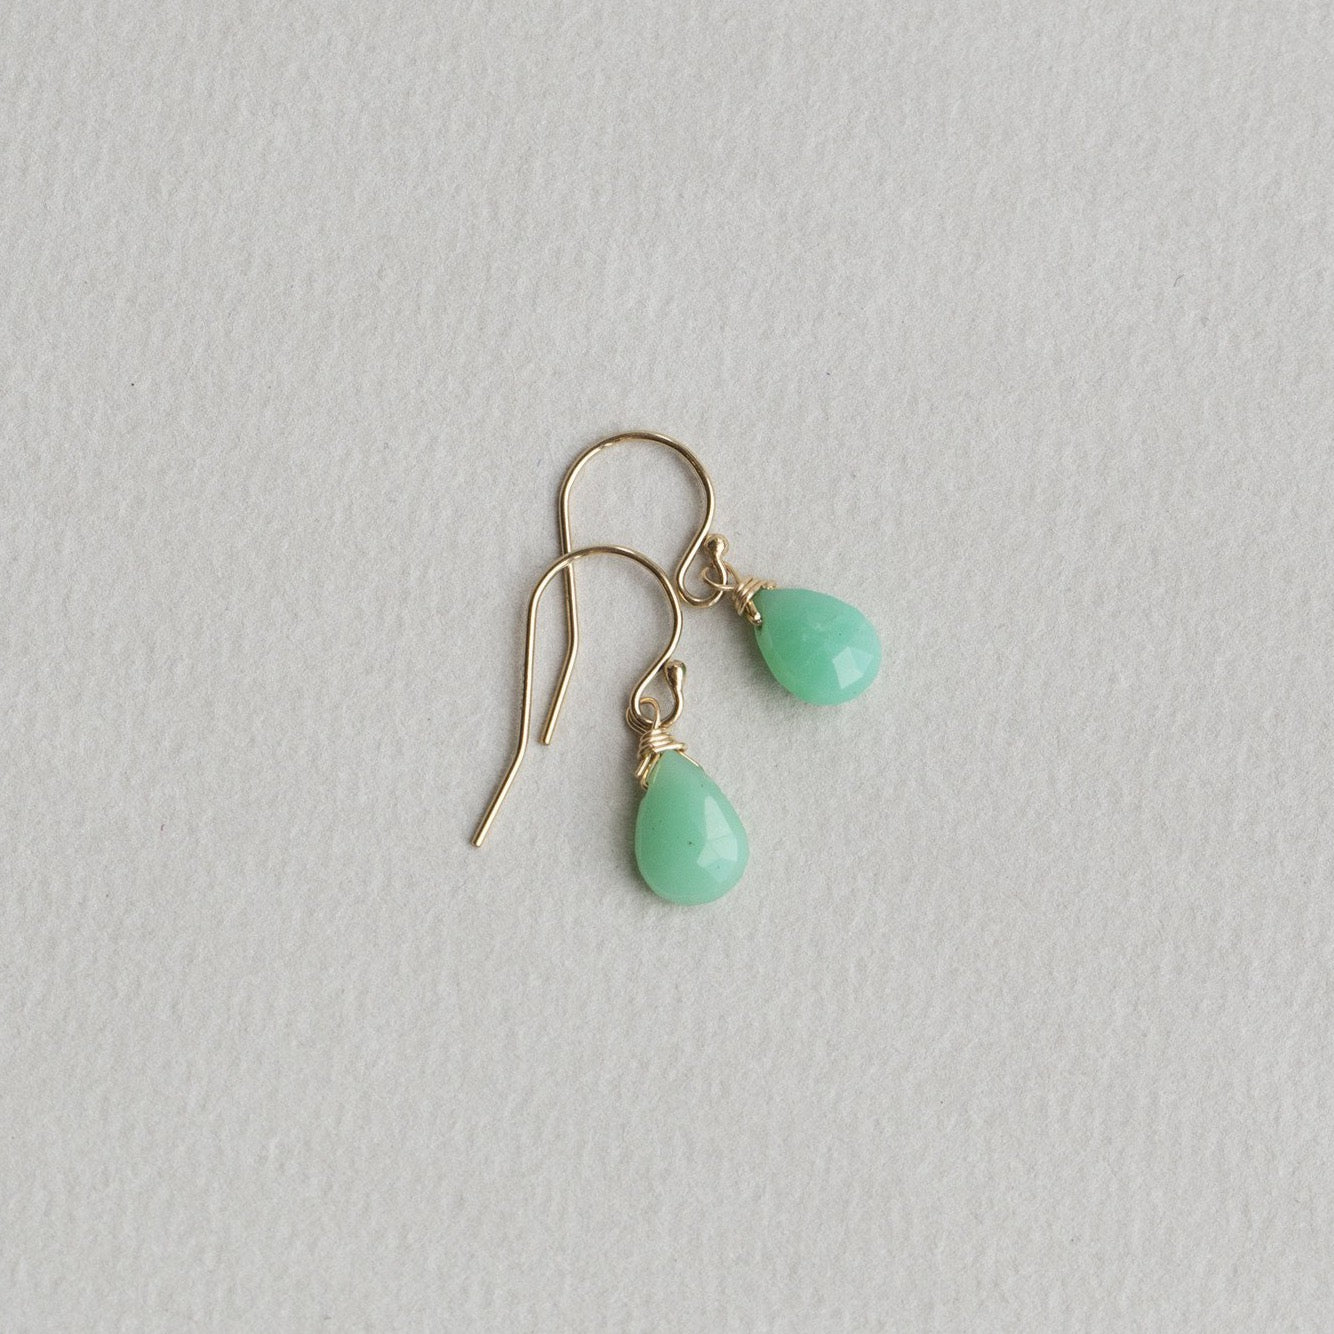 Chrysoprase Briolette Drop Earrings on Gold Filled Hooks by Brandts Jewellery